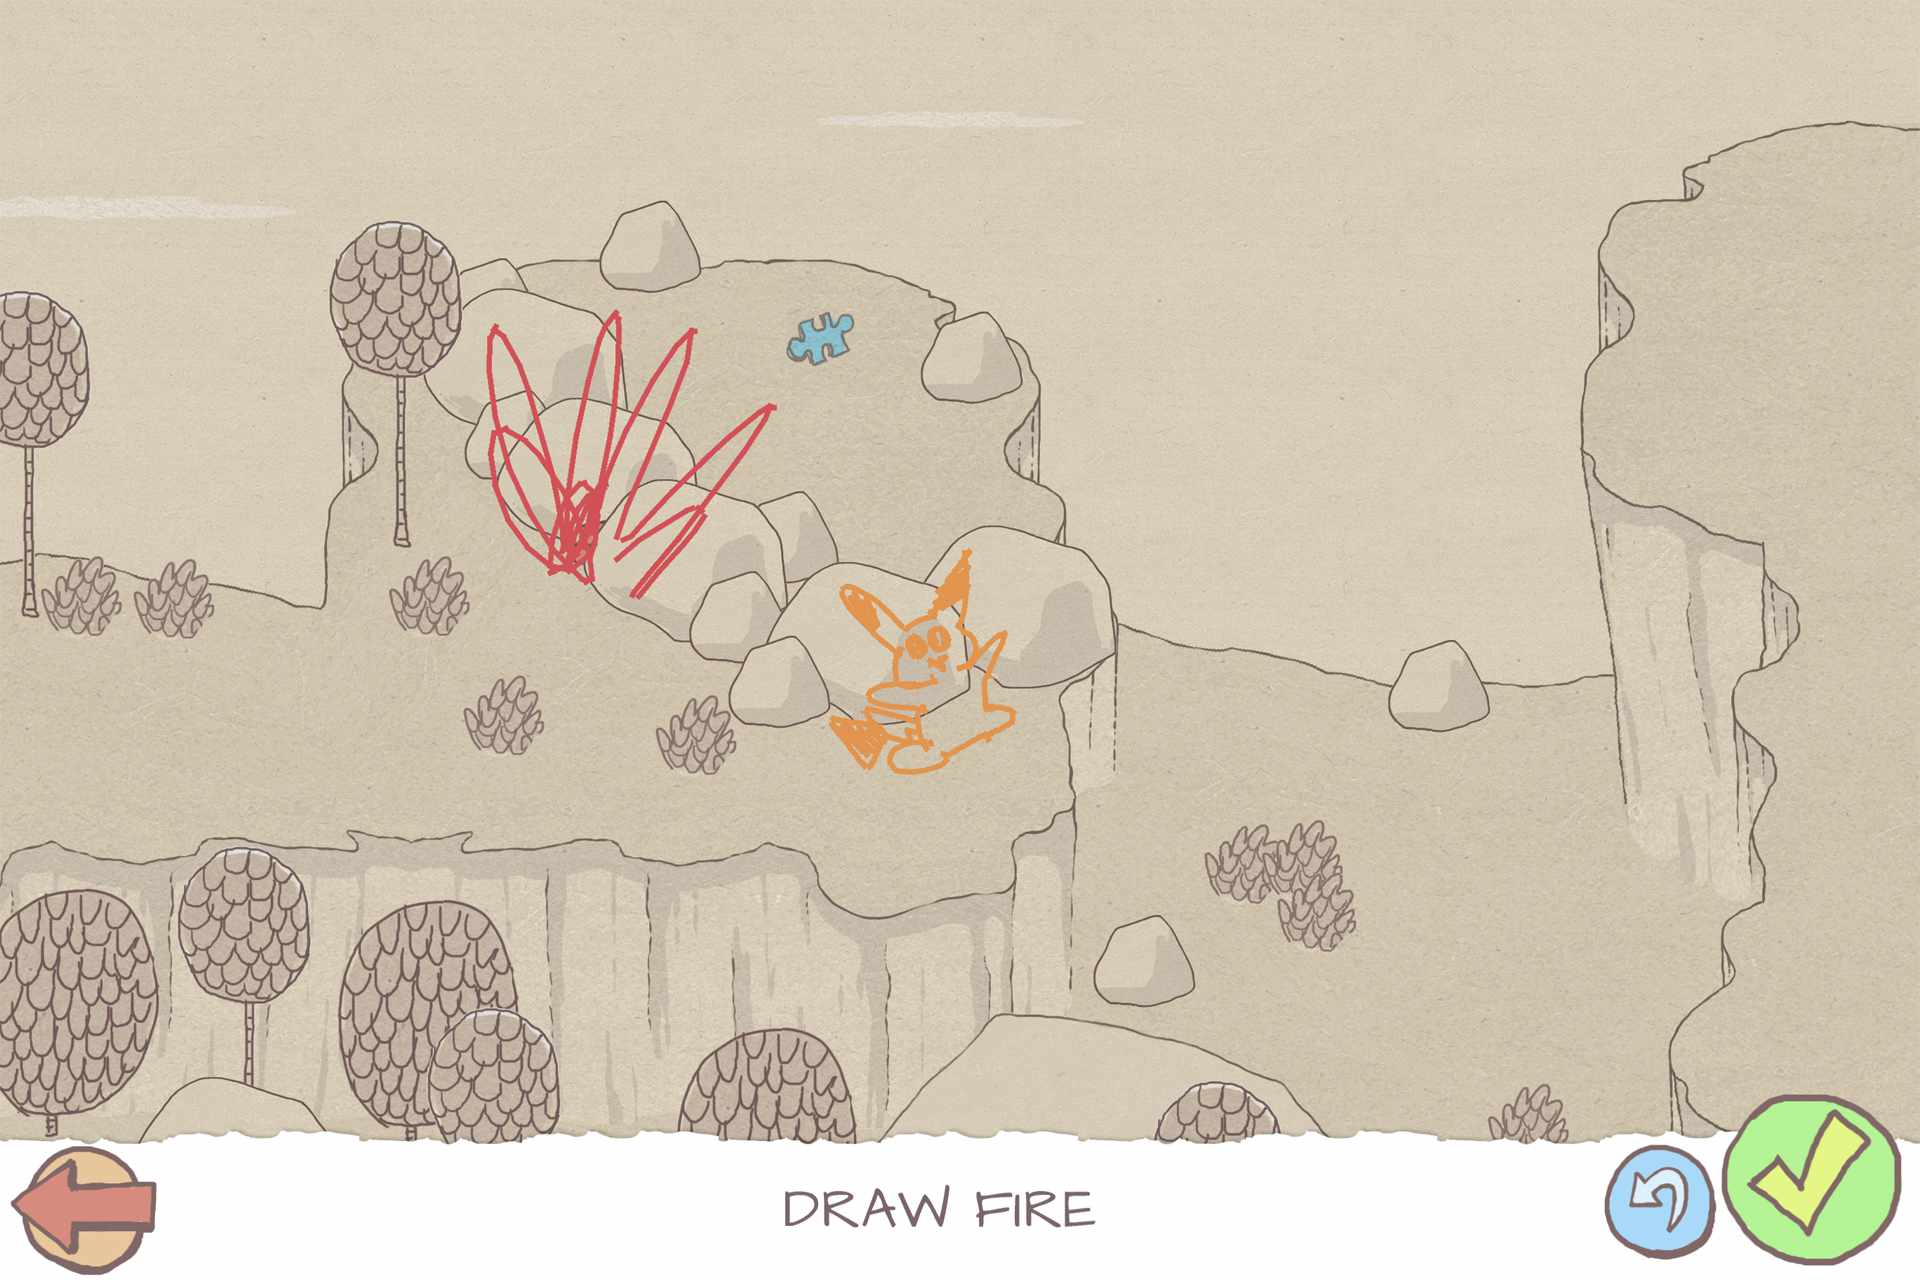 Draw A Stickman Windows 10 drawing video game on Surface Pro.